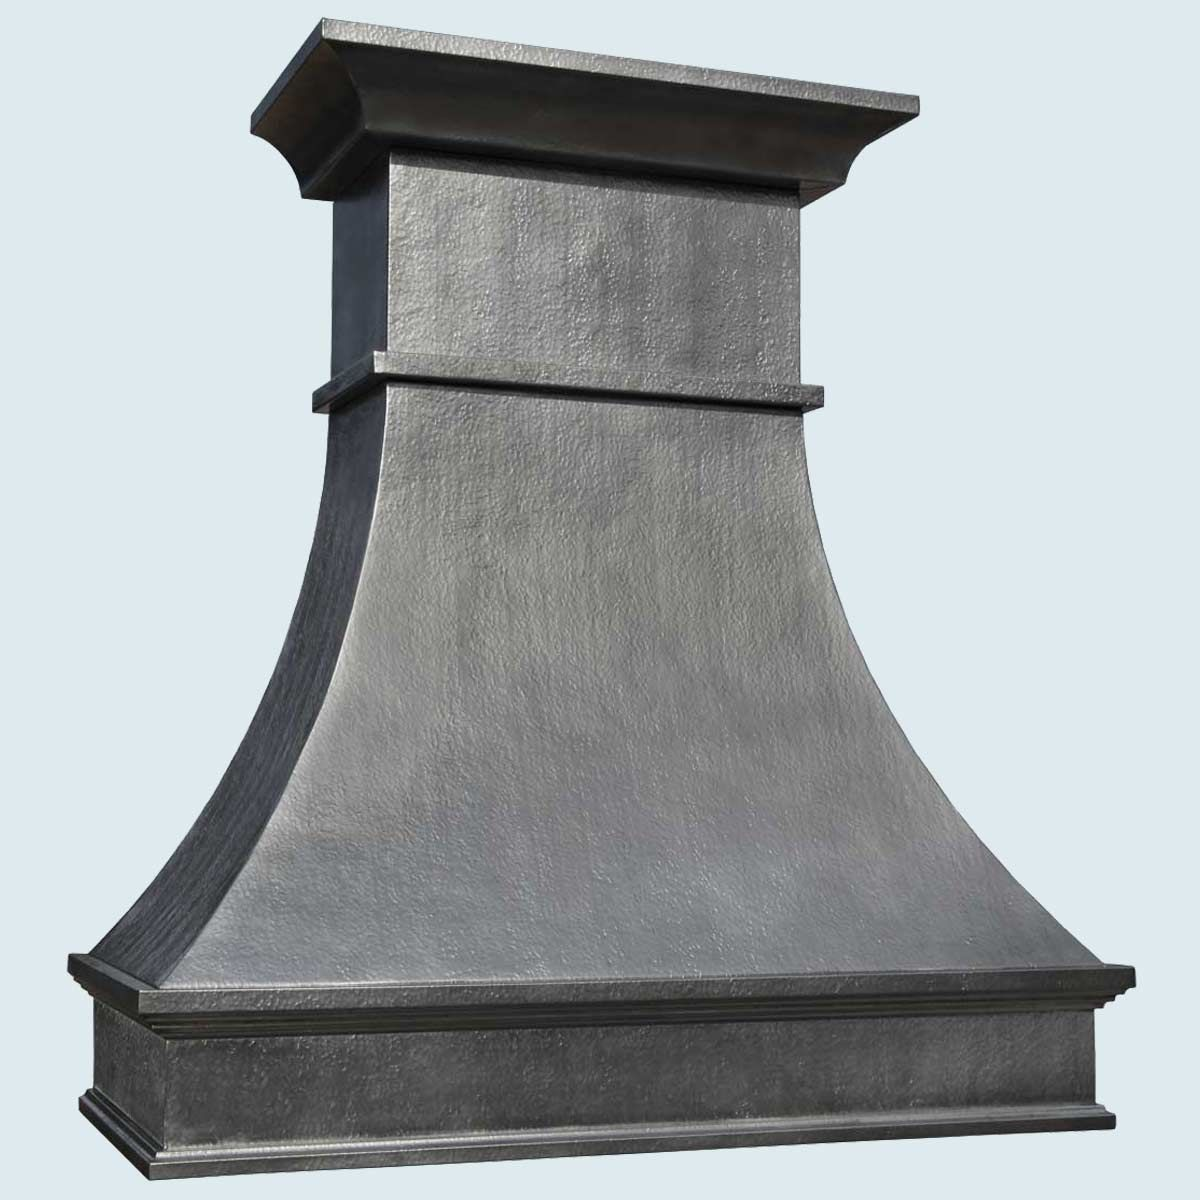 Custom Range Hoods ~ Hand crafted zinc range hood with french mantle band by